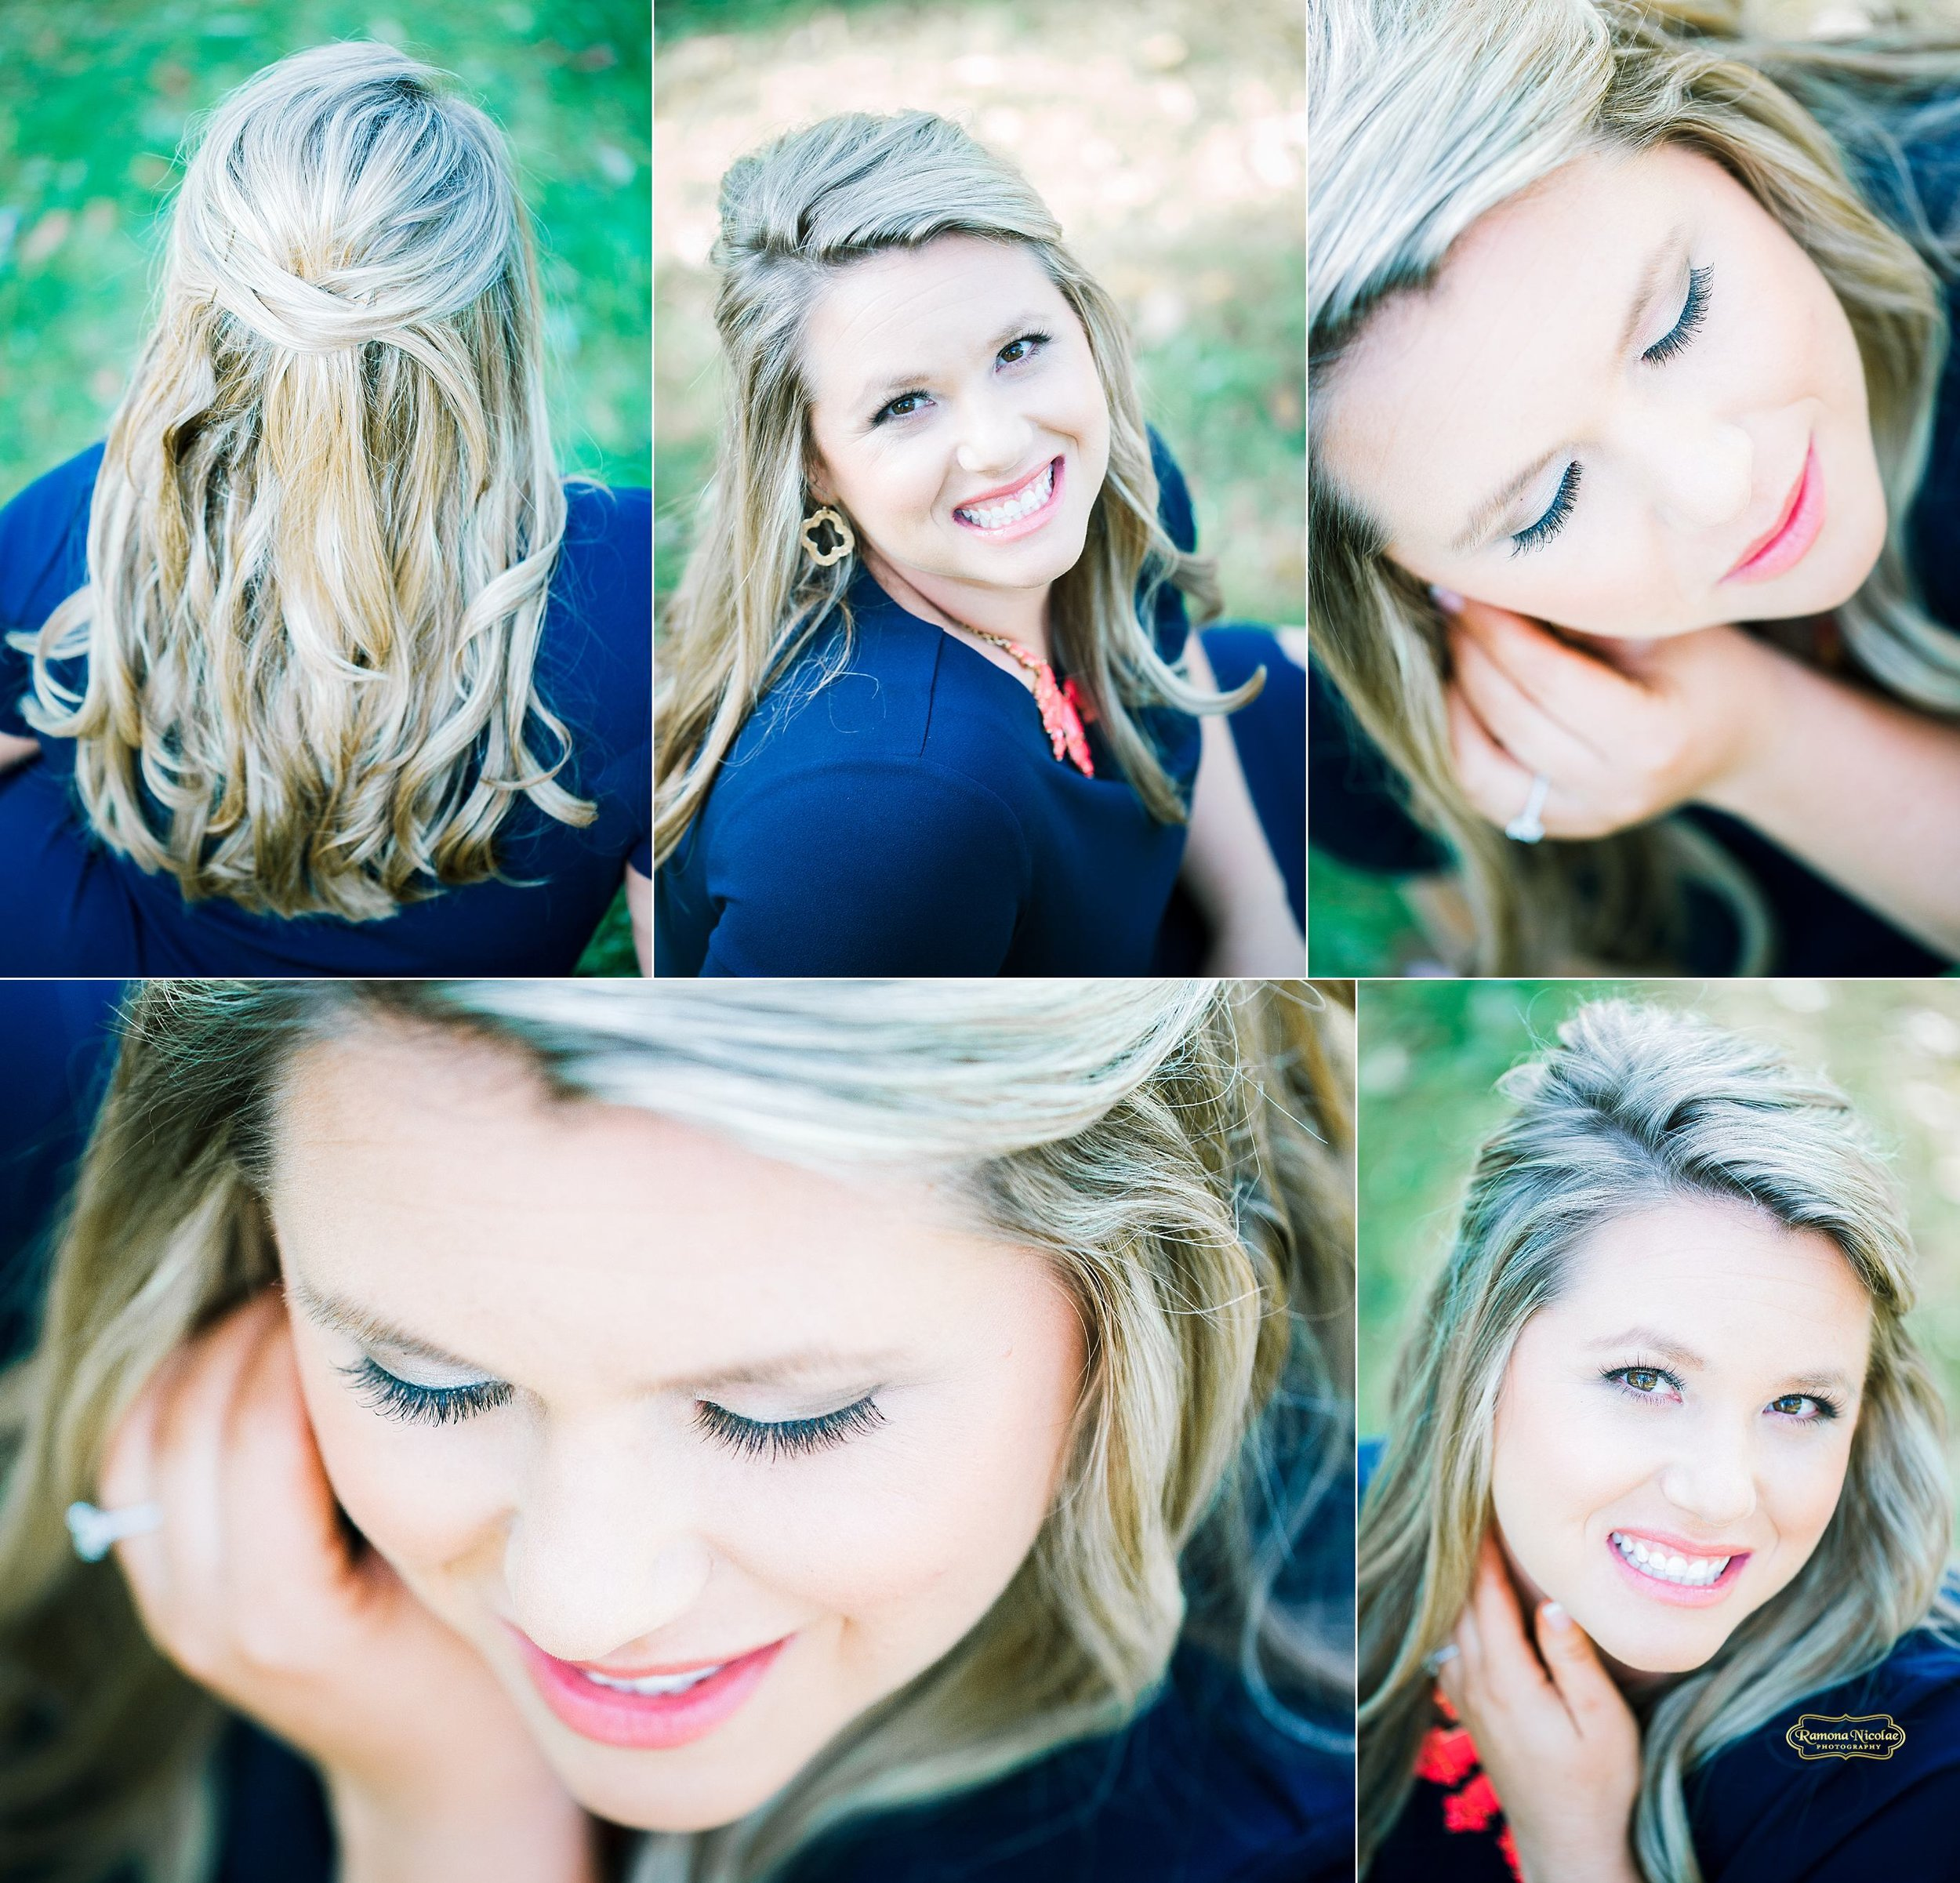 make up and hair details during engagement session at wachesaw plantation of beautiful blonge lady smiling with ramona nicolae photography.jpg